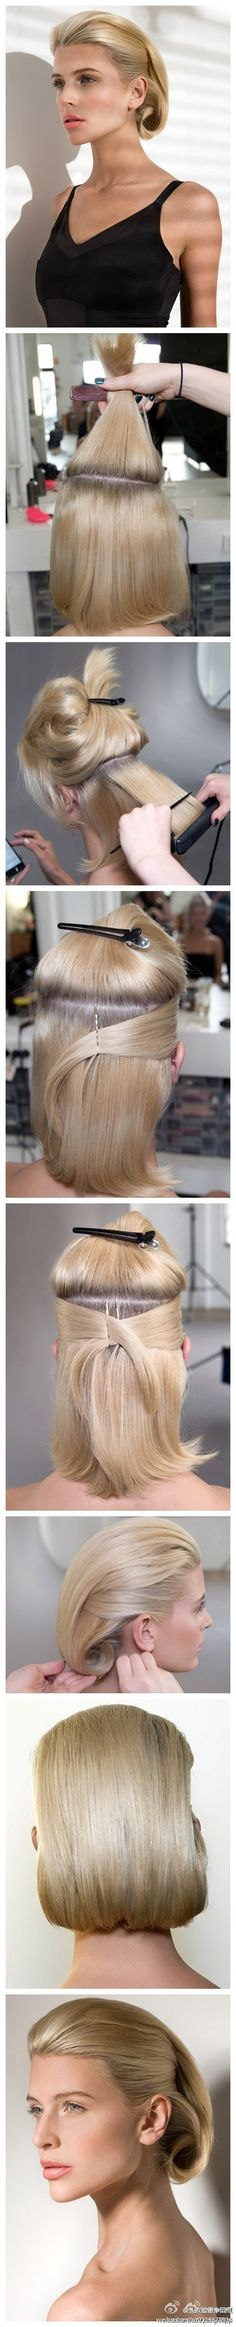 Hair News Network   All Hair. All The Time.  http://www.HairNewsNetwork.com